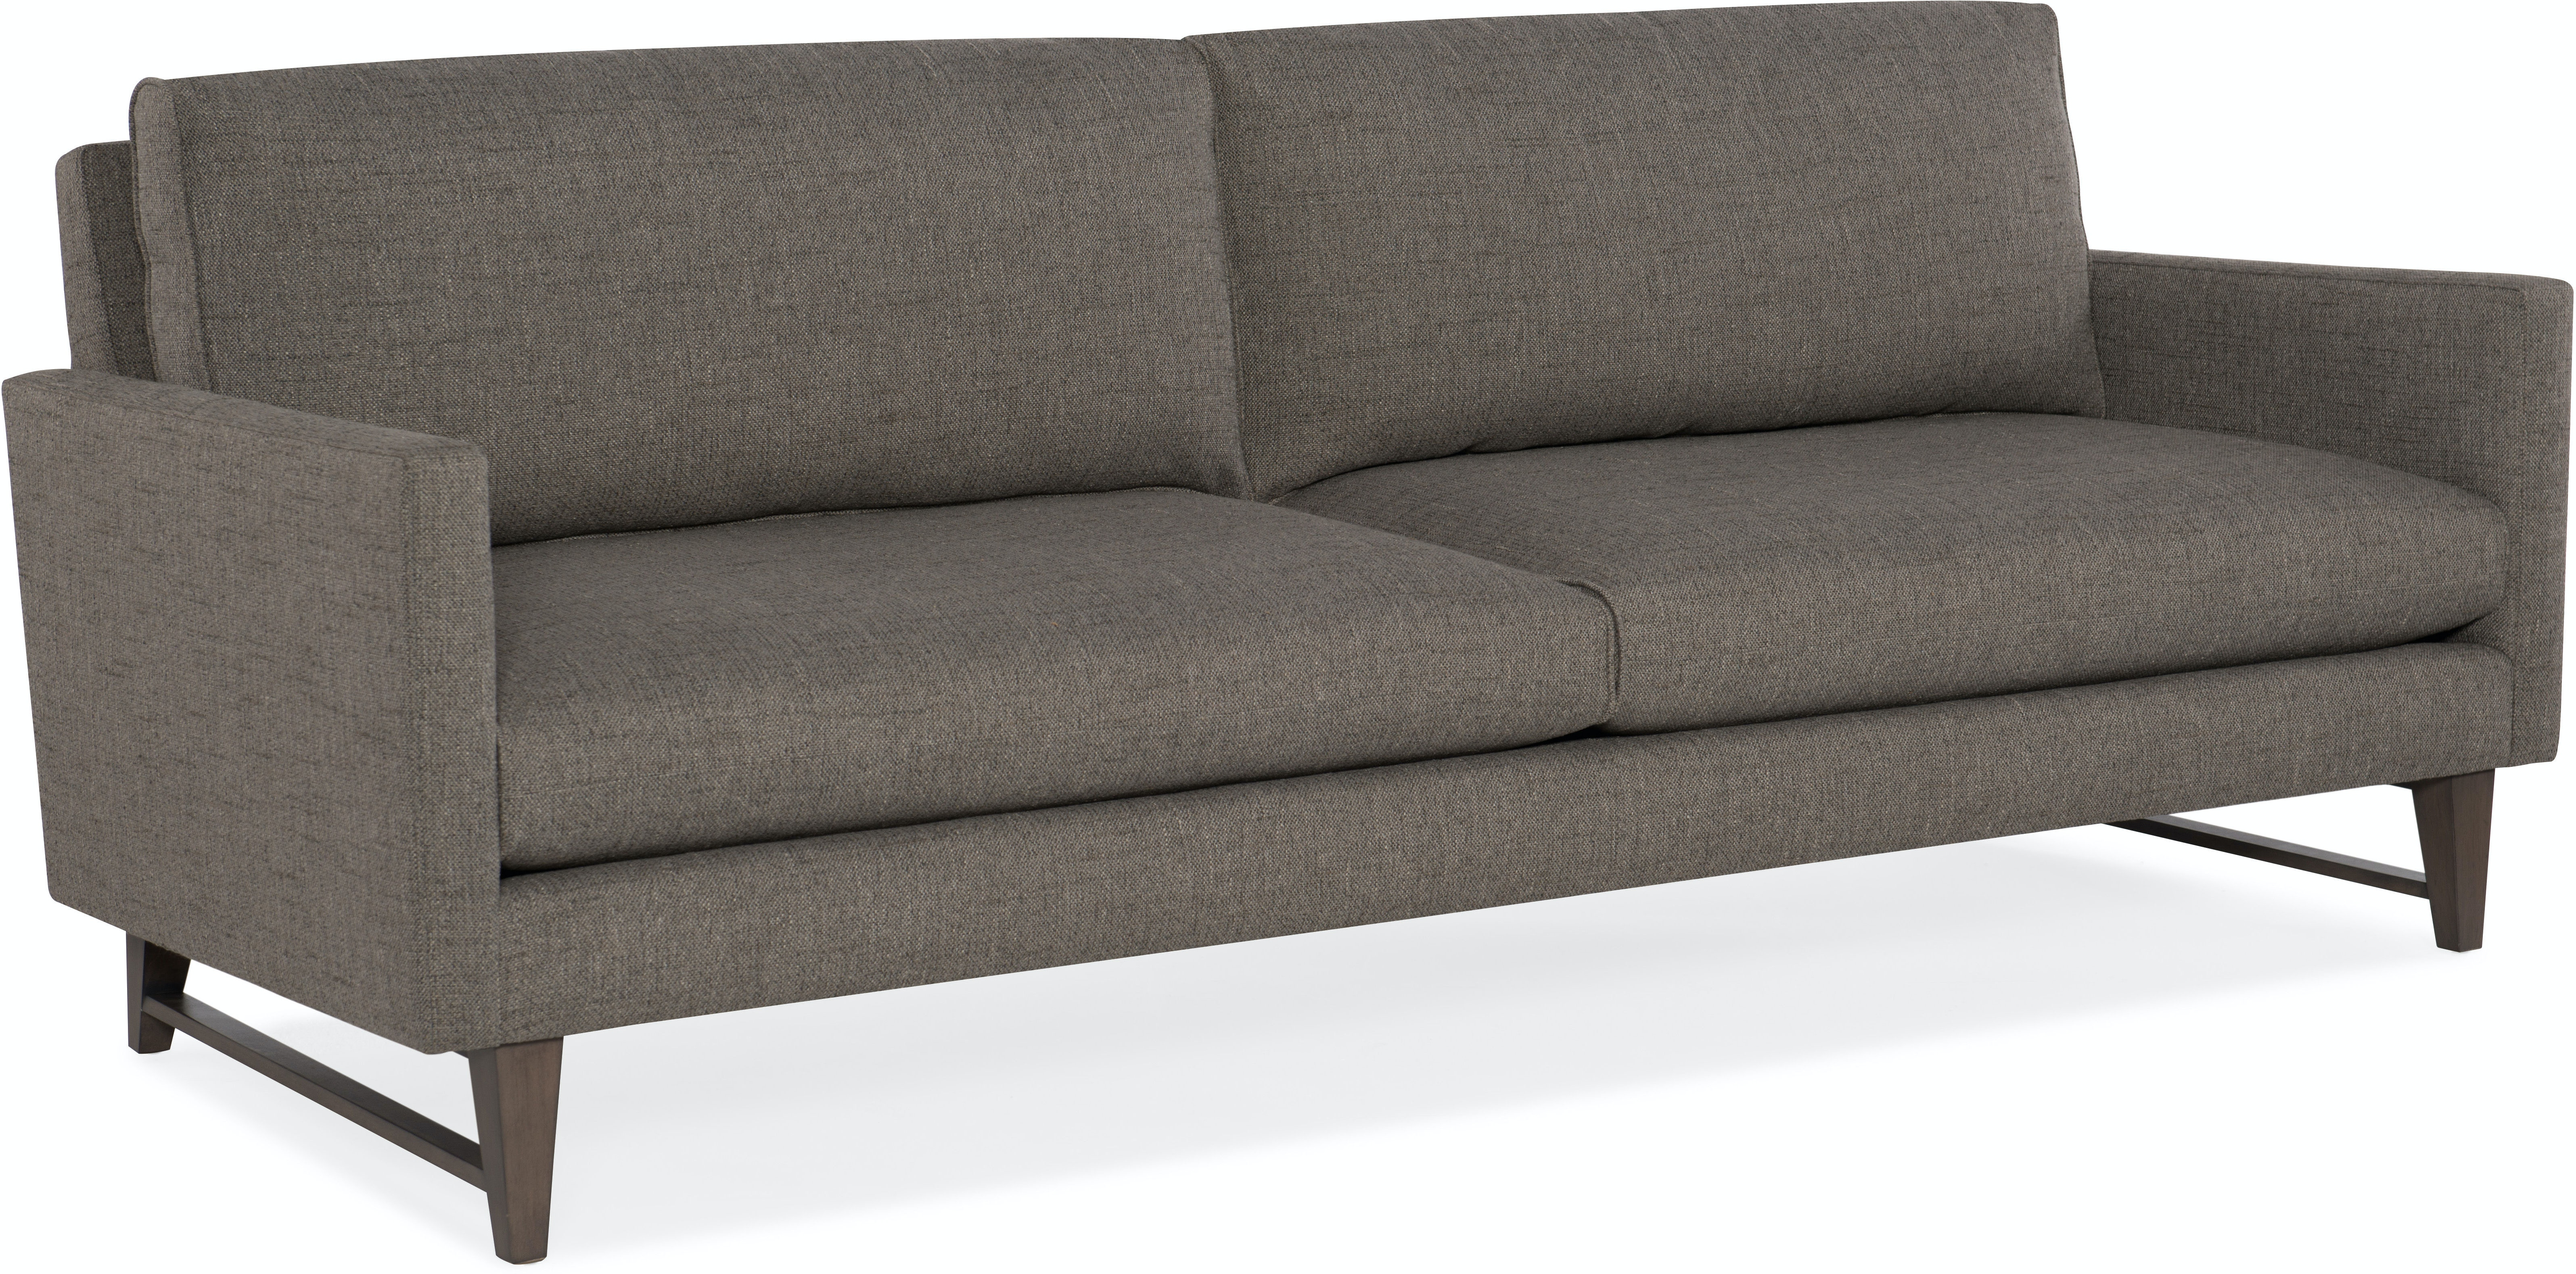 pick up 6c13c ac931 MARQ Living Room Carlton Sofa 825-5012